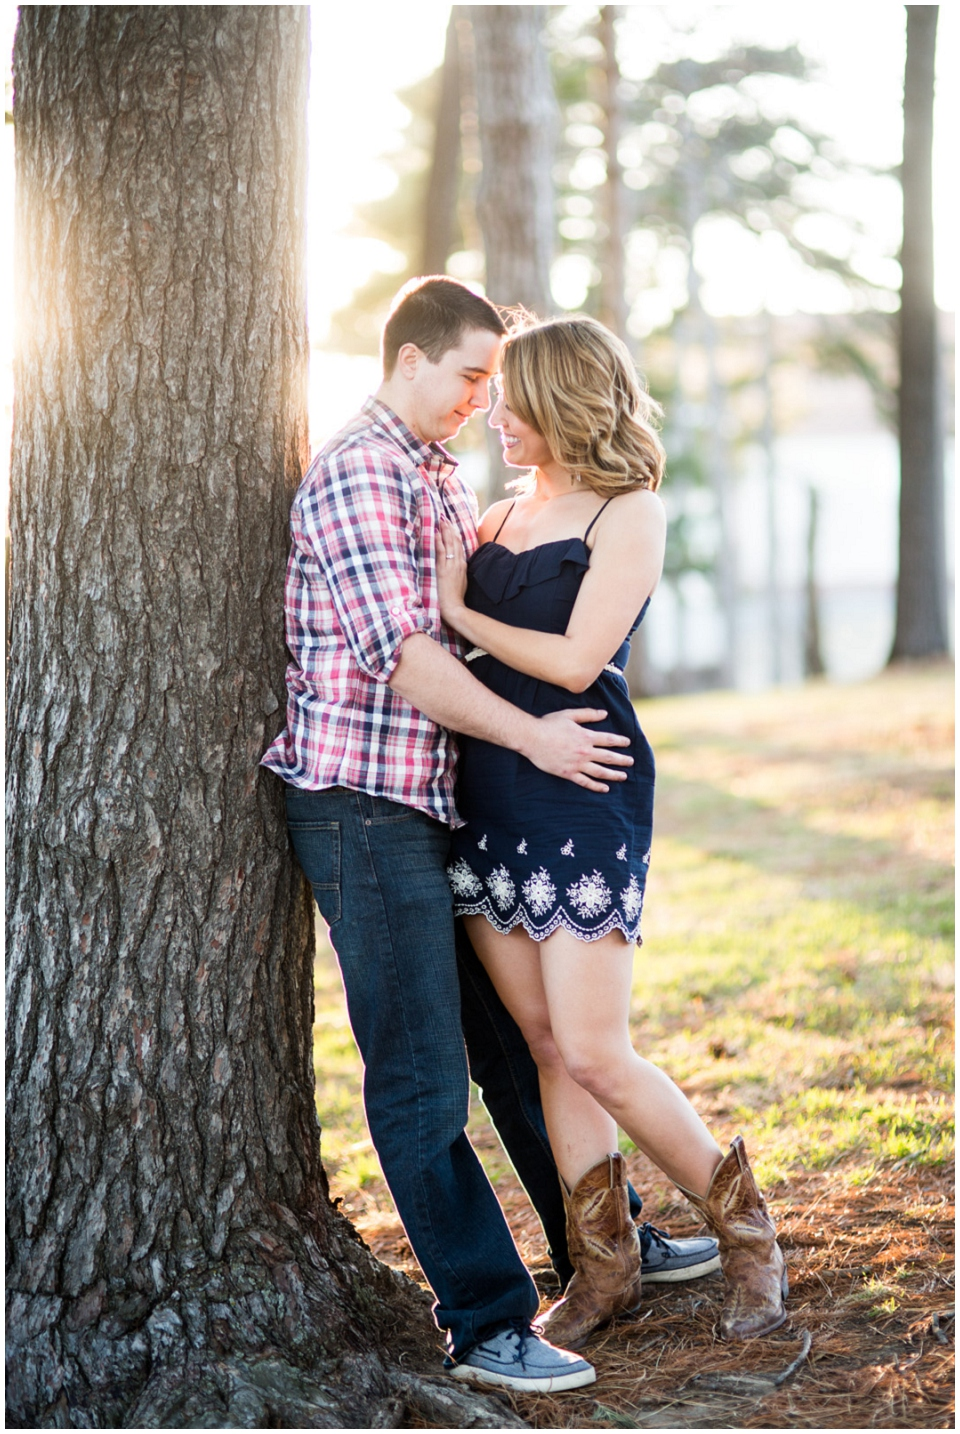 RachelGarrett-Omaha-Engagement-session-023.jpg